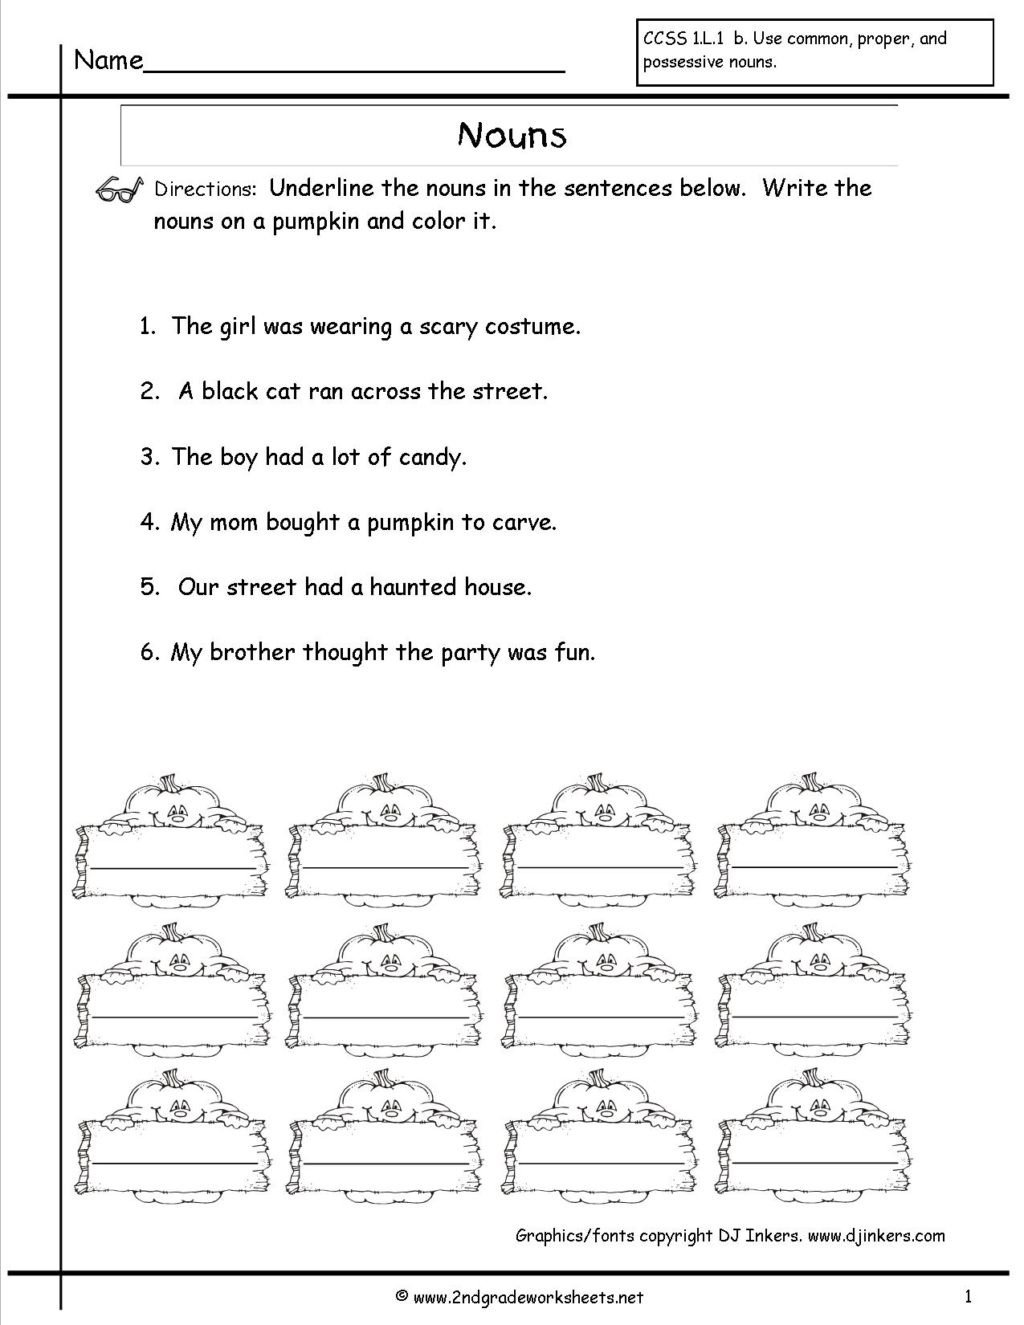 Free Proper Noun Worksheets Worksheet Greater Lessee Worksheets for Grade English and